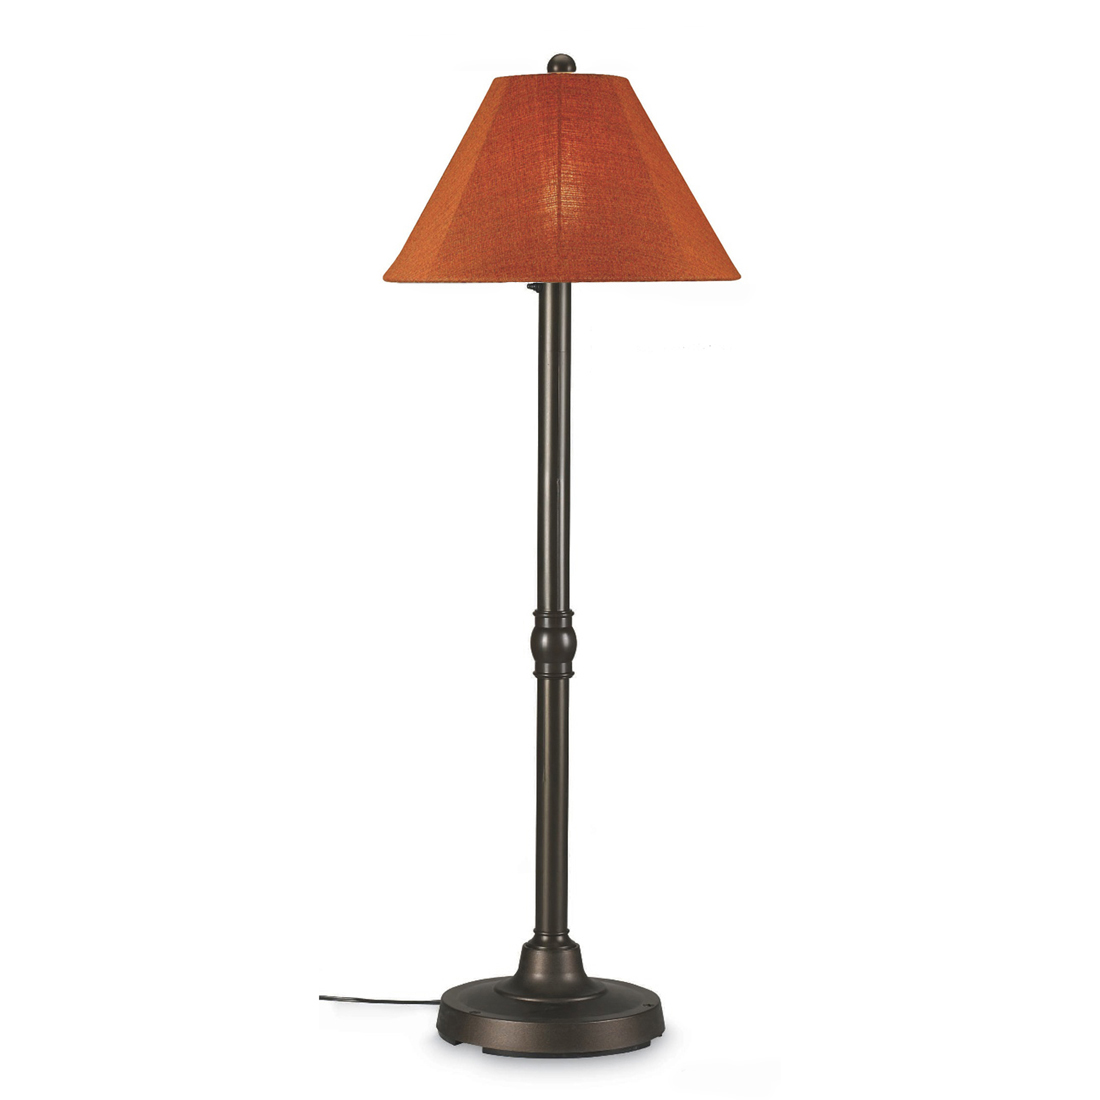 Patio Living Concepts San Juan 60 Inch Floor Lamp w  2 Inch Bronze Body & Chili Linen Sunbrella Shade Fabric by Patio Living Concepts